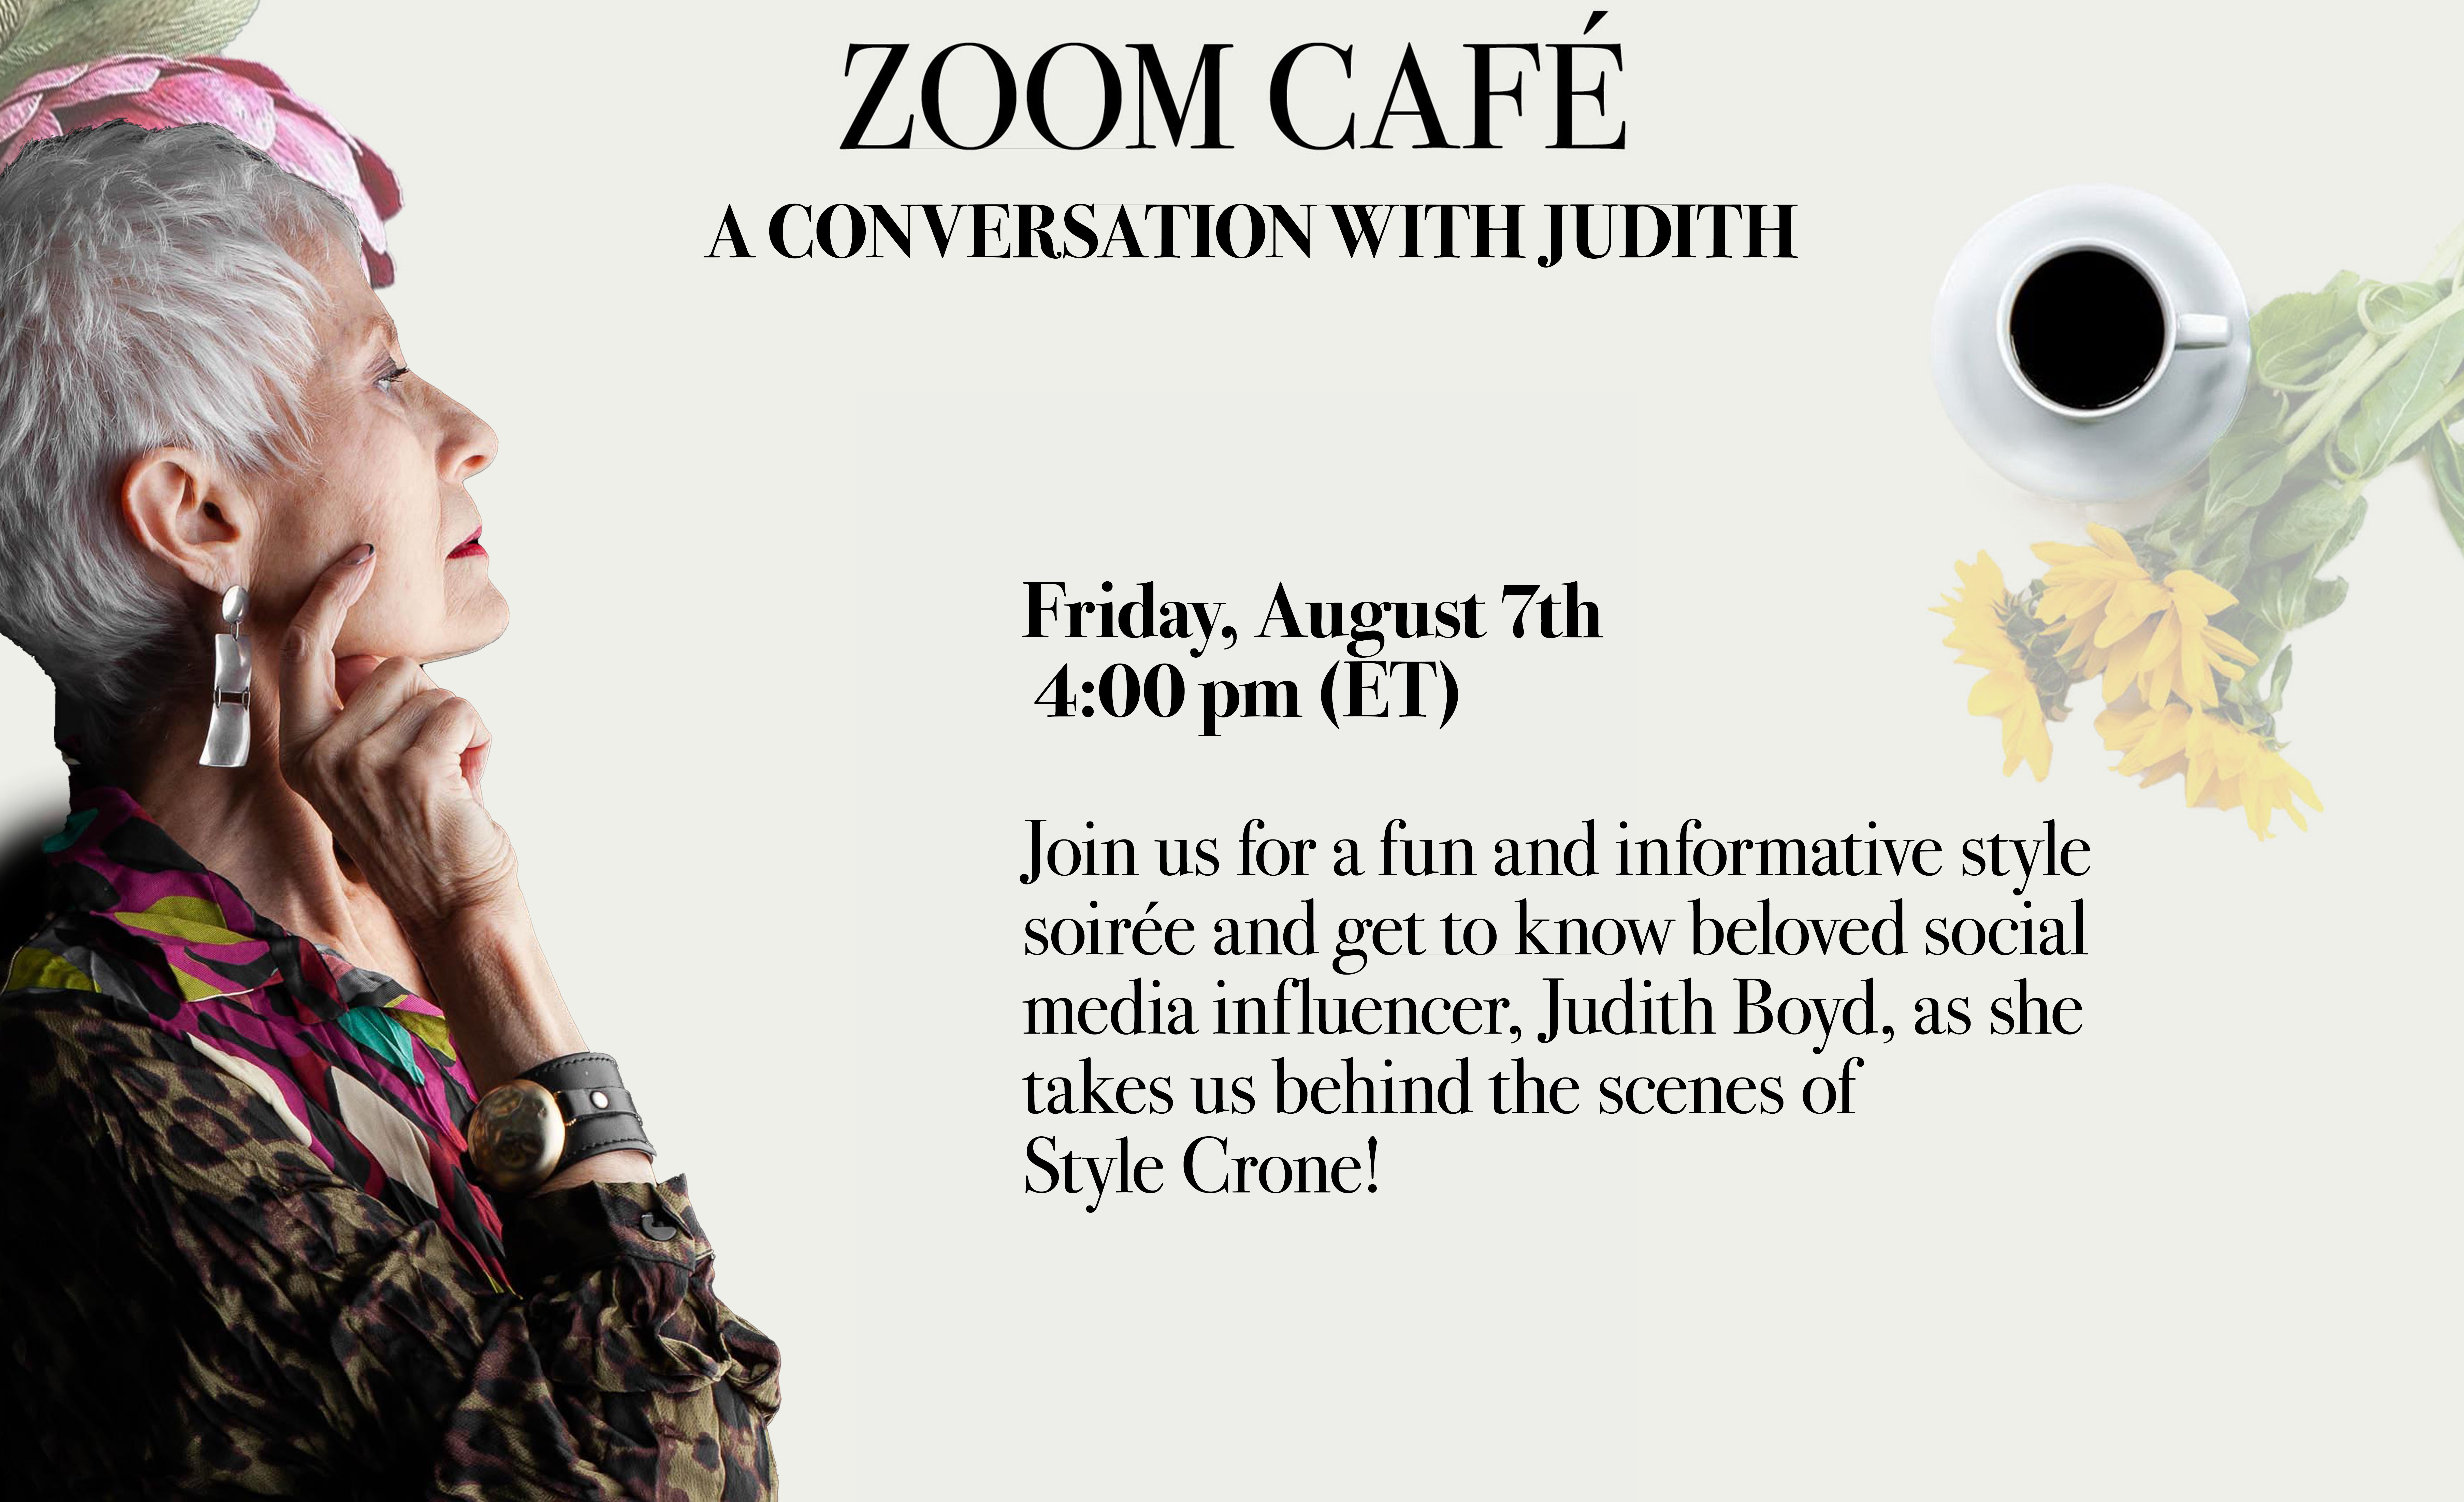 We met style icon Judith Boyd aka StyleCrone to talk about Style and personal growth.